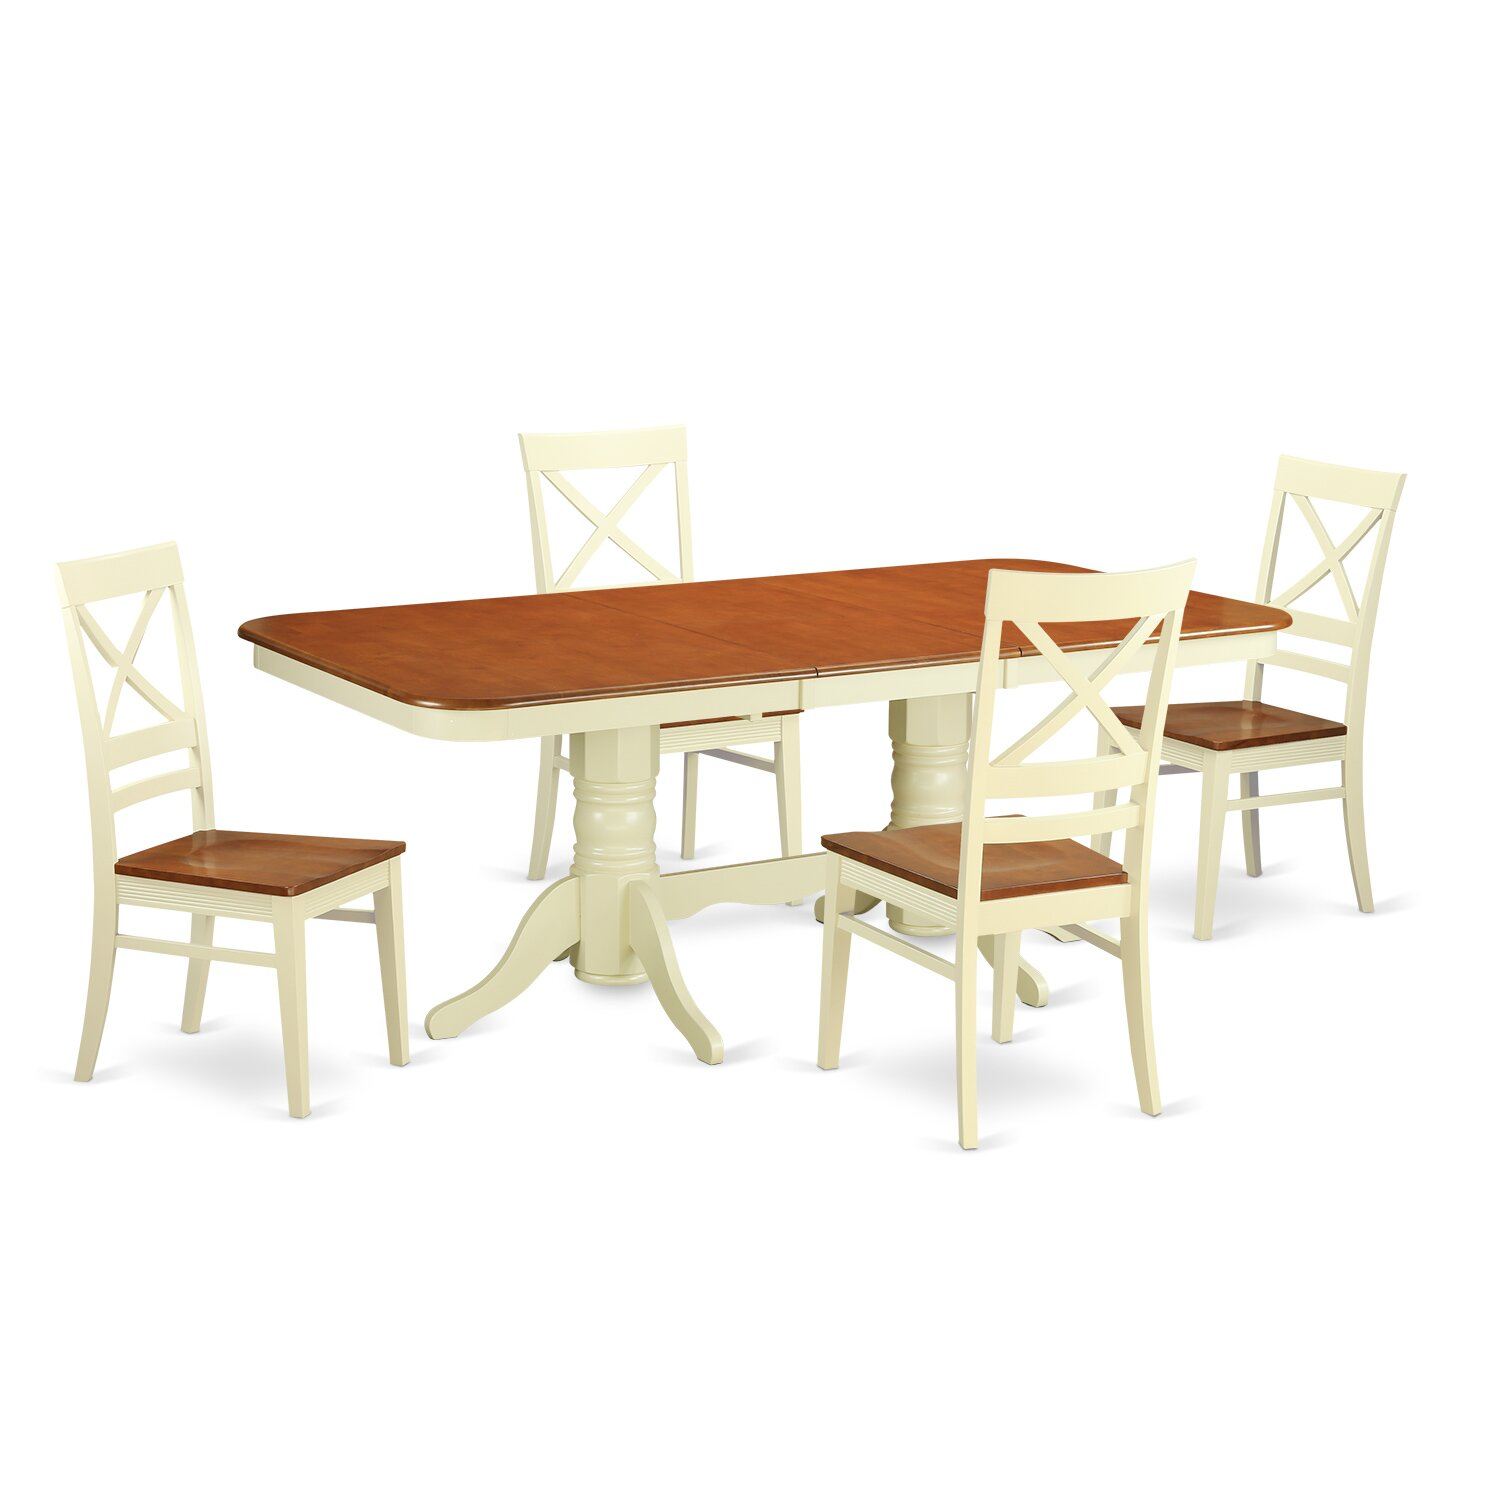 Wooden importers napoleon 5 piece dining set wayfair for Kitchenette sets furniture